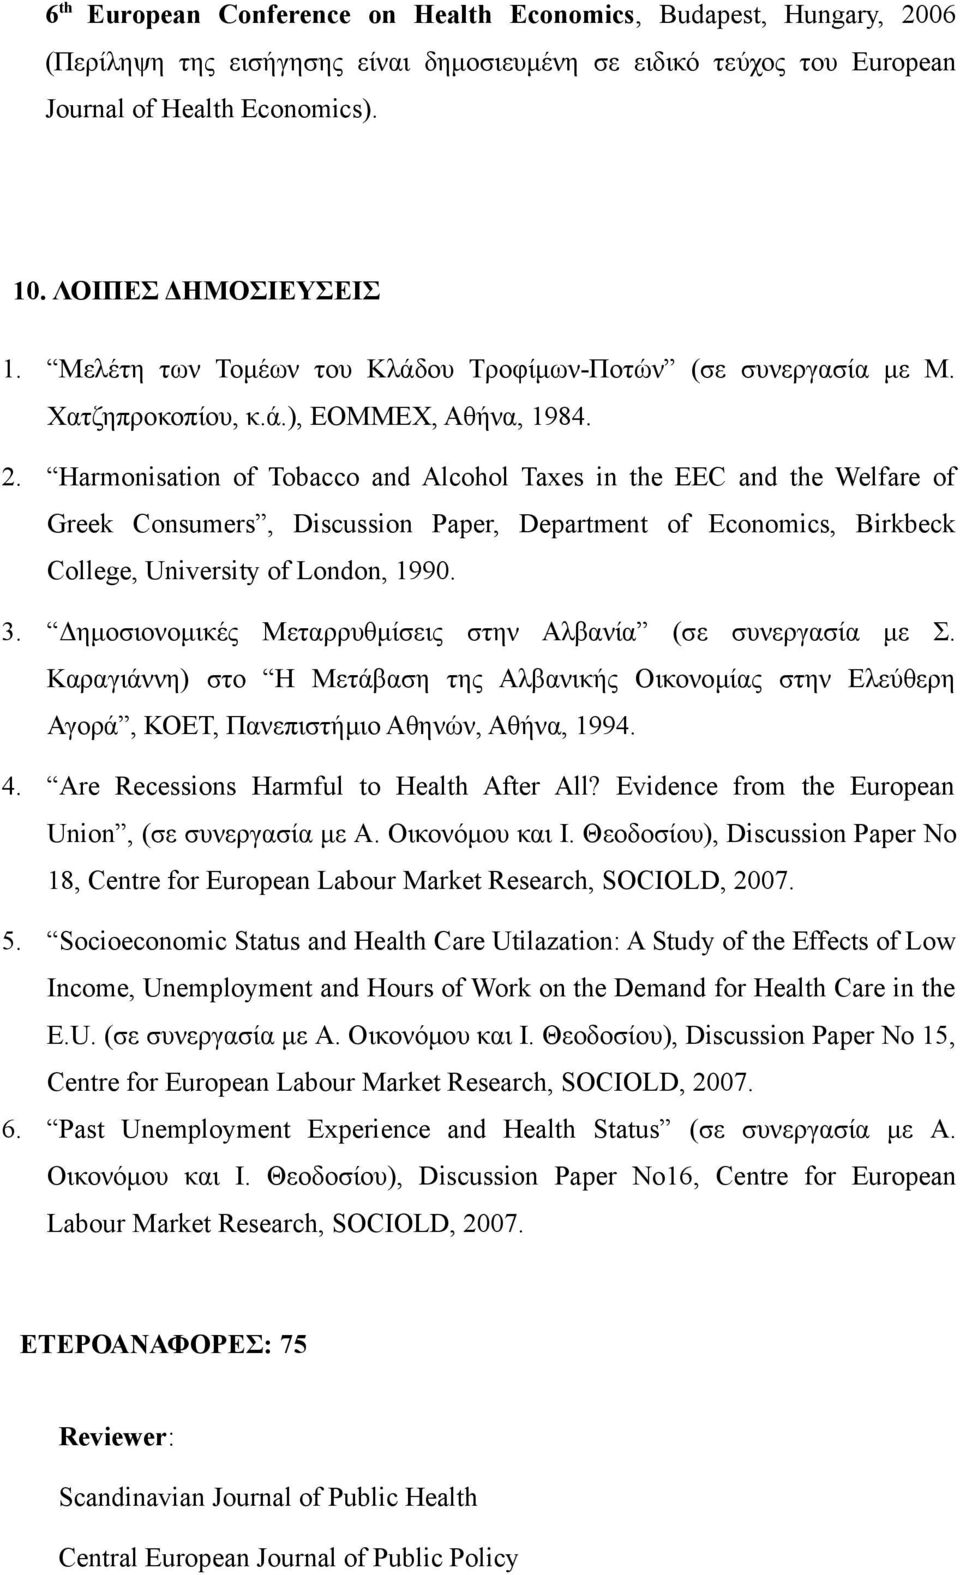 Harmonisation of Tobacco and Alcohol Taxes in the EEC and the Welfare of Greek Consumers, Discussion Paper, Department of Economics, Birkbeck College, University of London, 1990. 3.